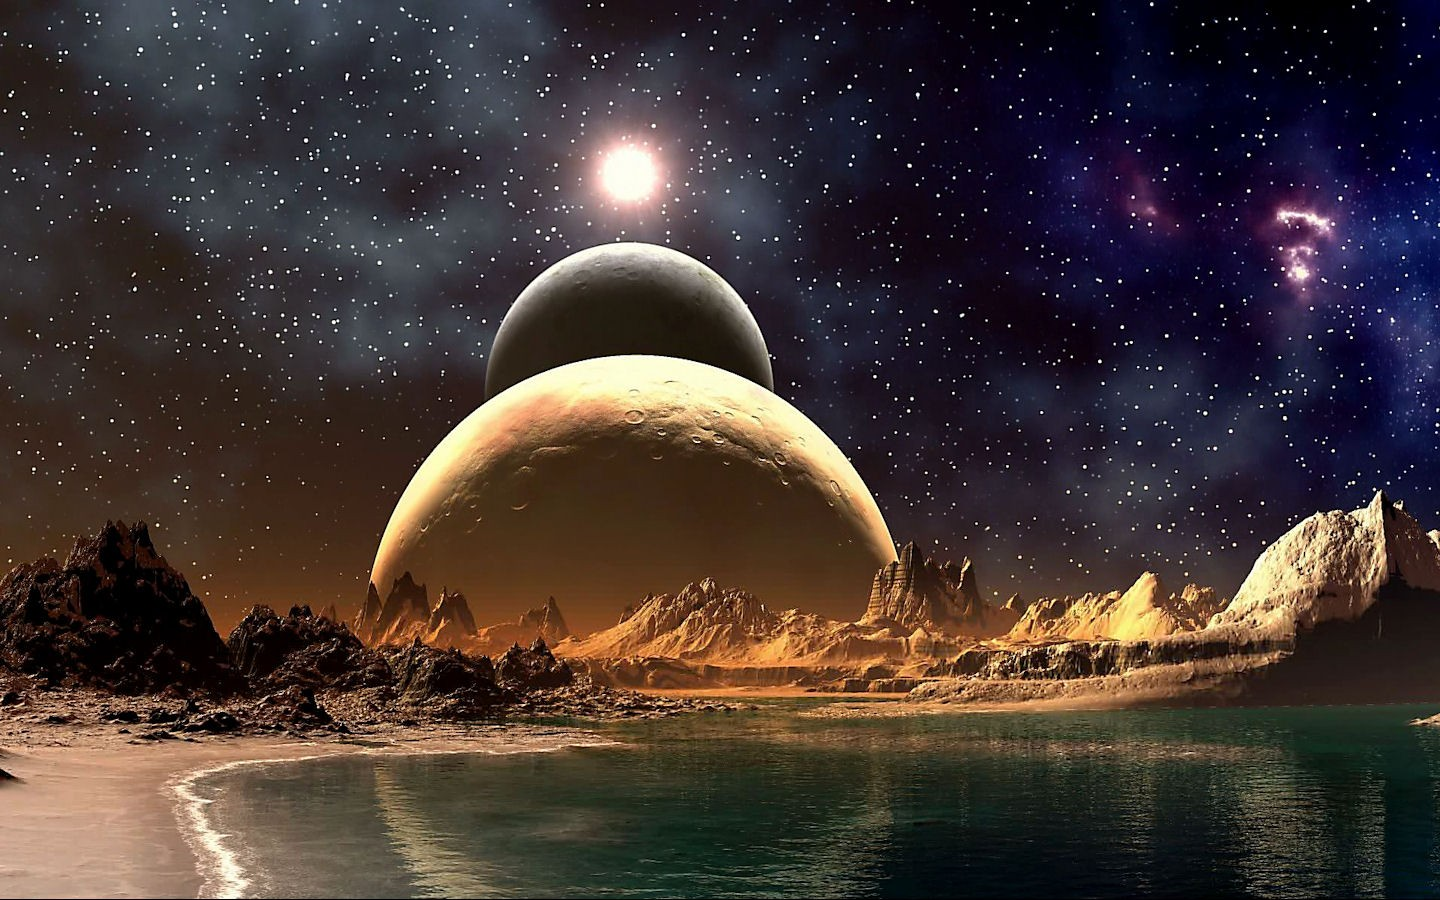 planets science fiction photomanipulations fresh new hd wallpaper best 1440x900